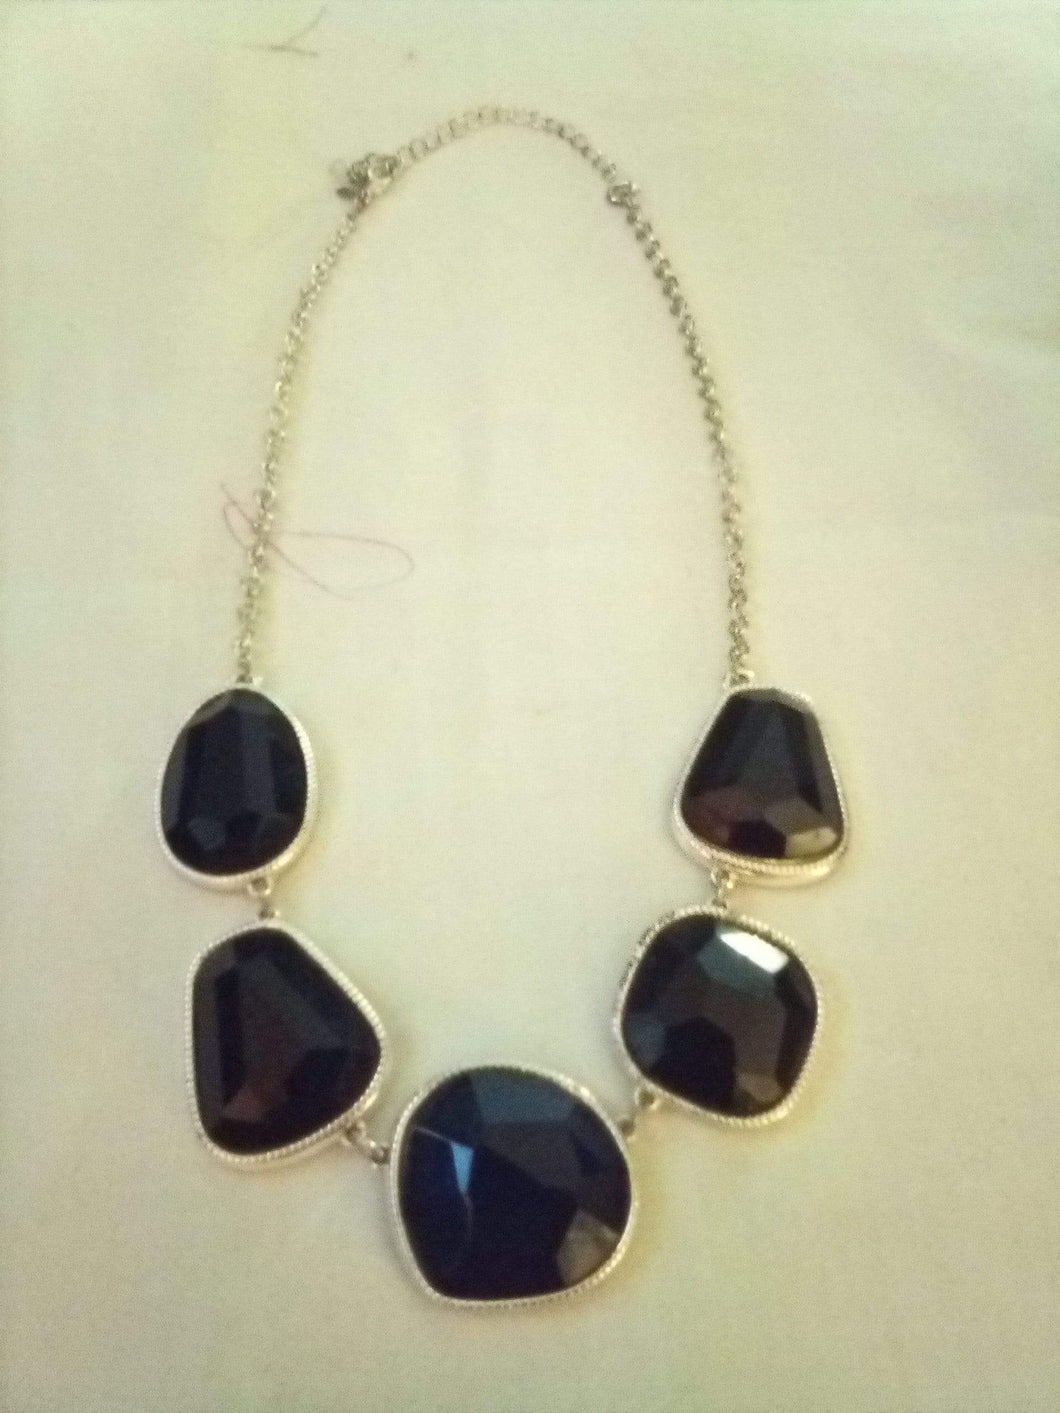 Pretty necklace with black design - B&P'sringsnthings